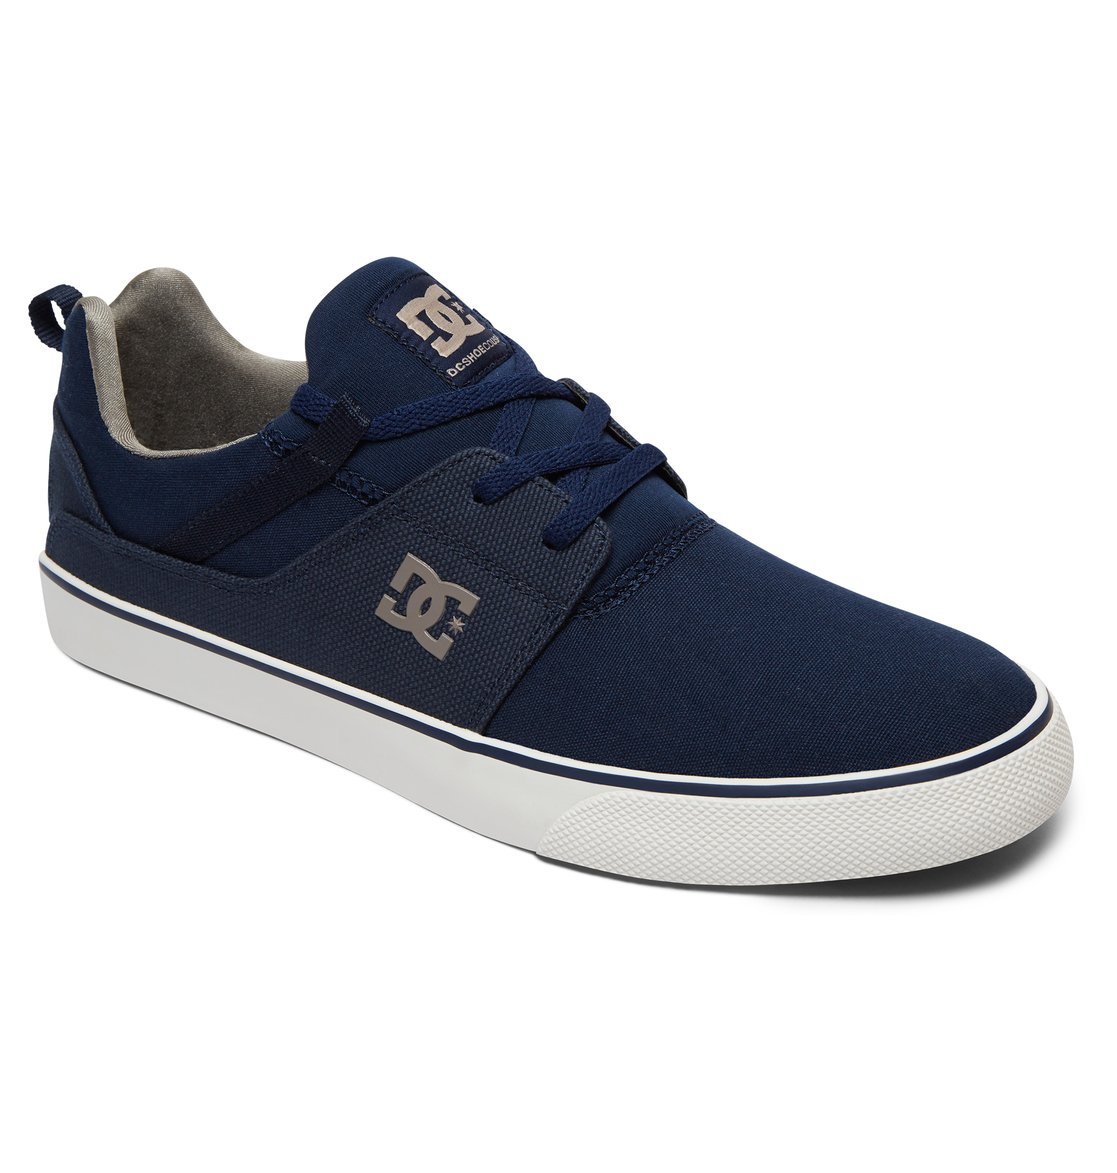 Chaussures DC Heathrow Navy Nvy